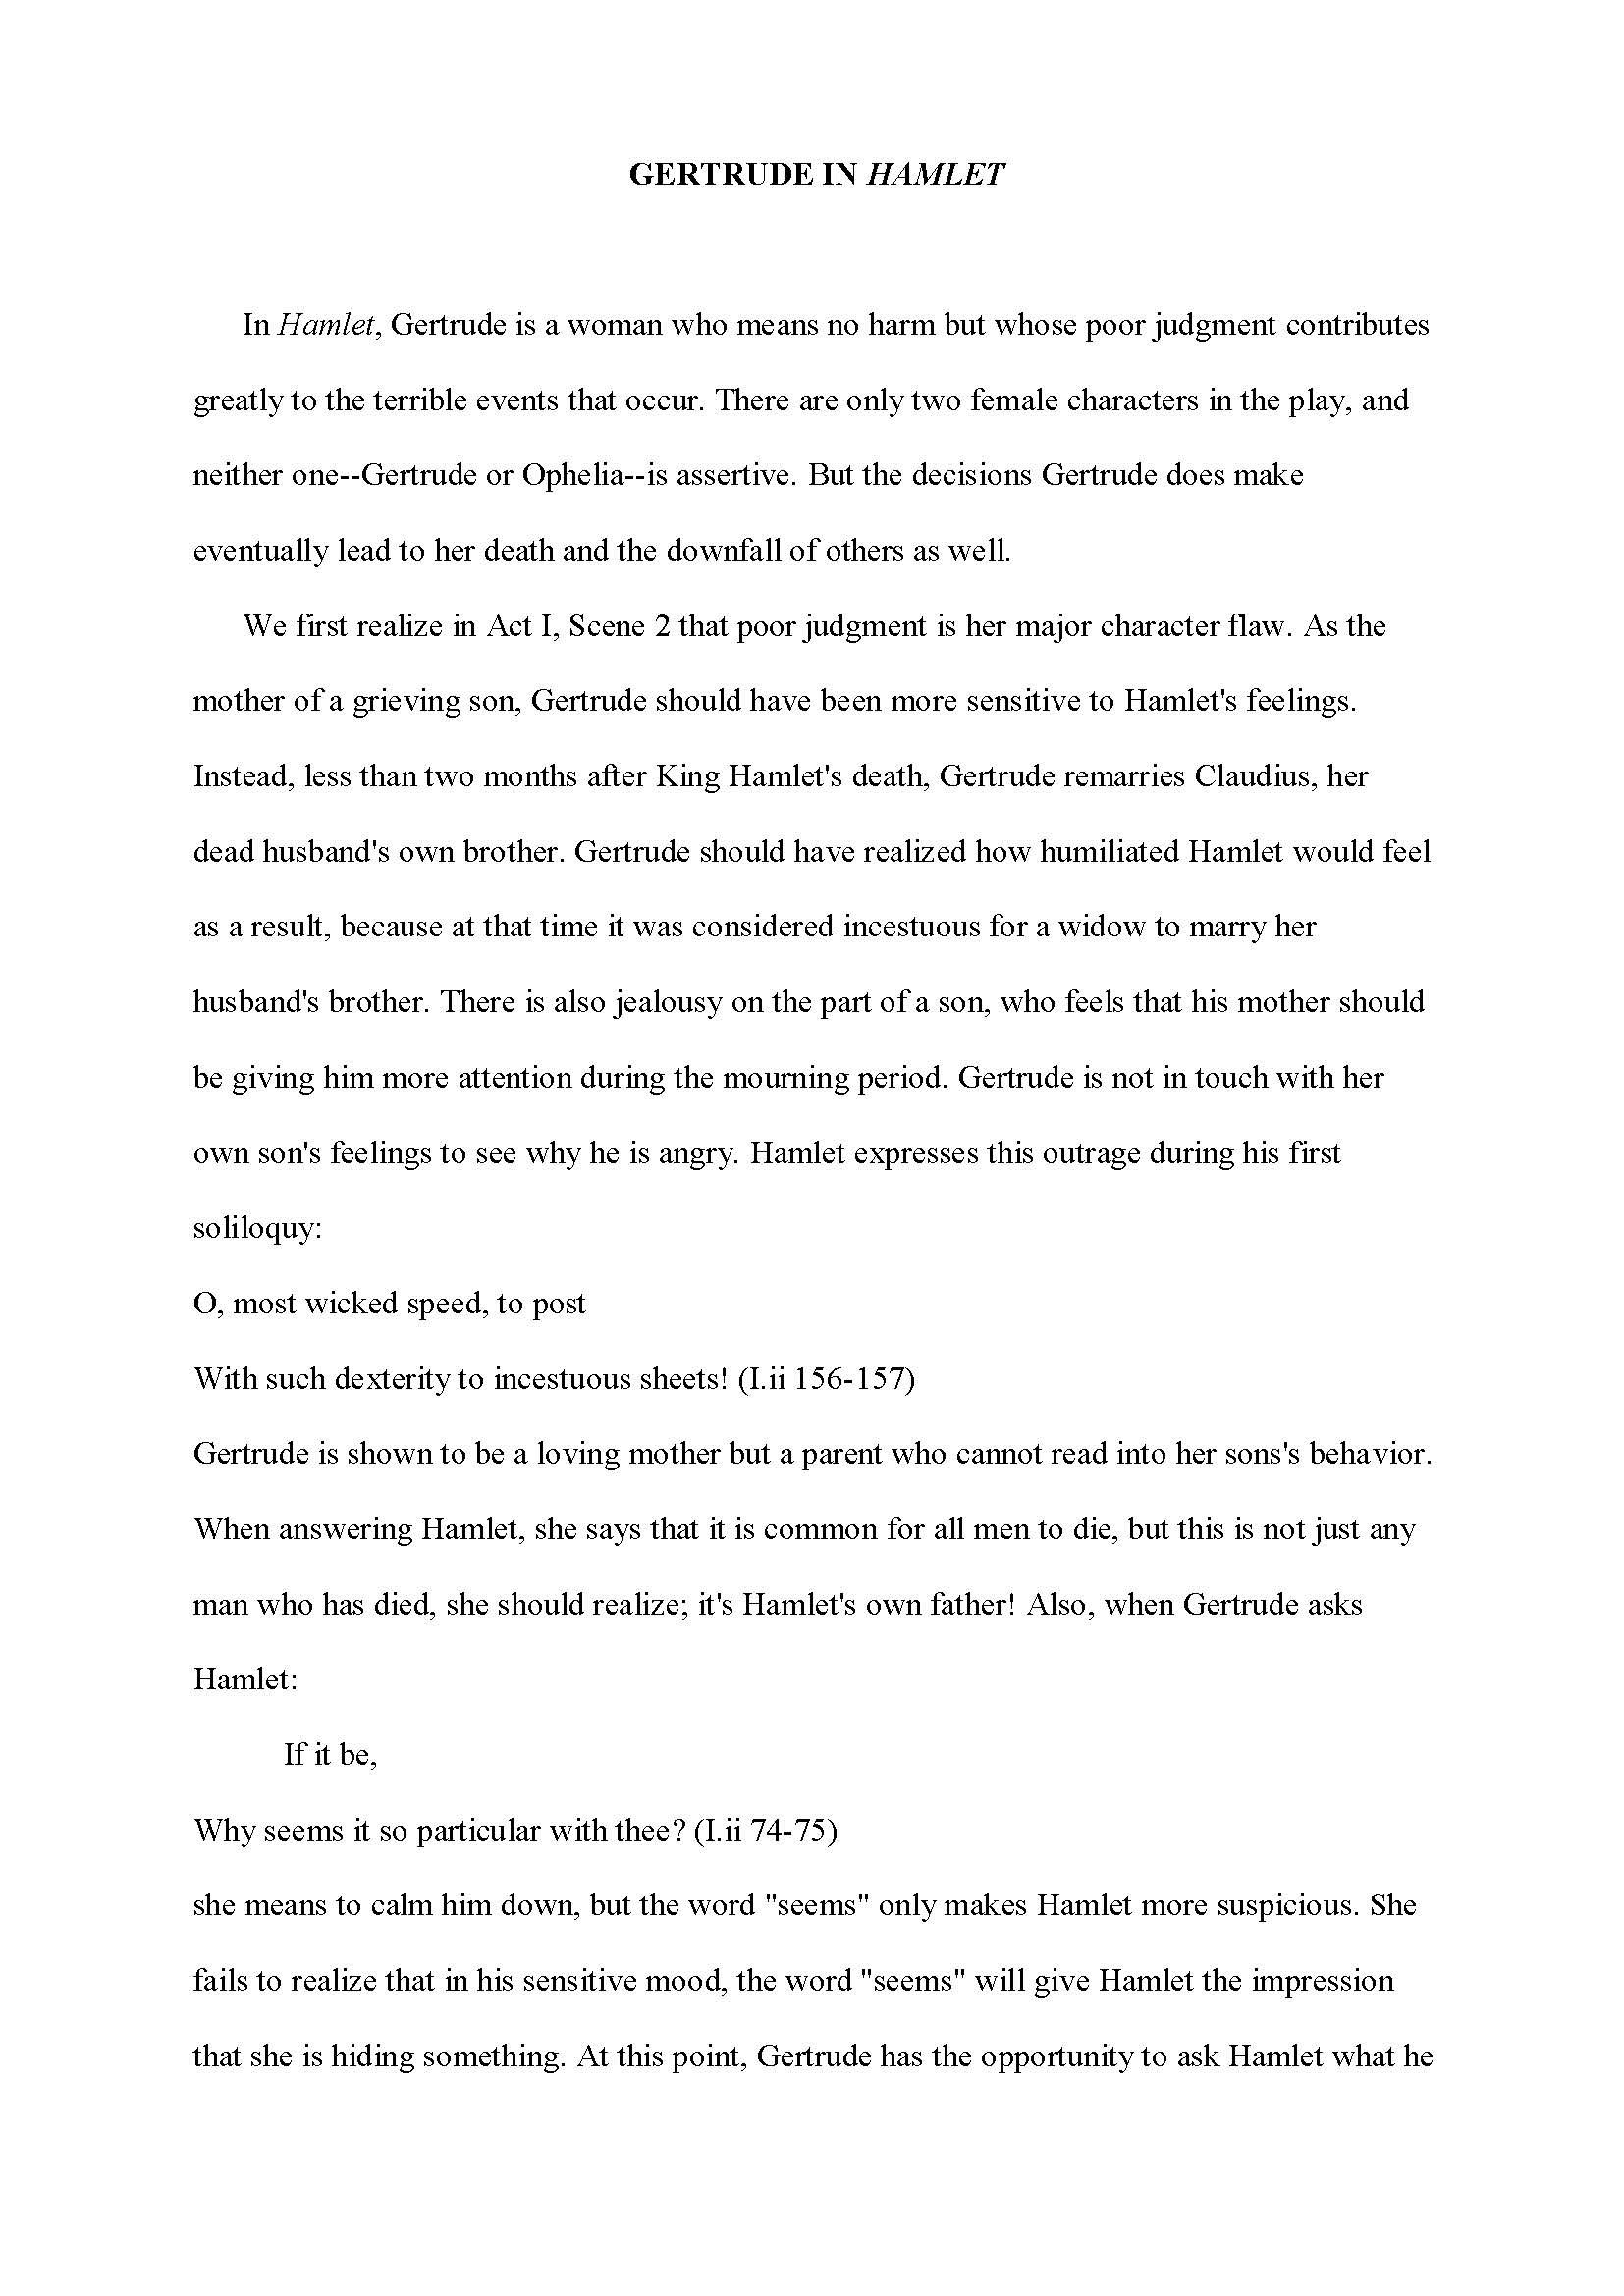 009 Character Essay Example Wondrous Introduction For Nhs Writing Prompts Full